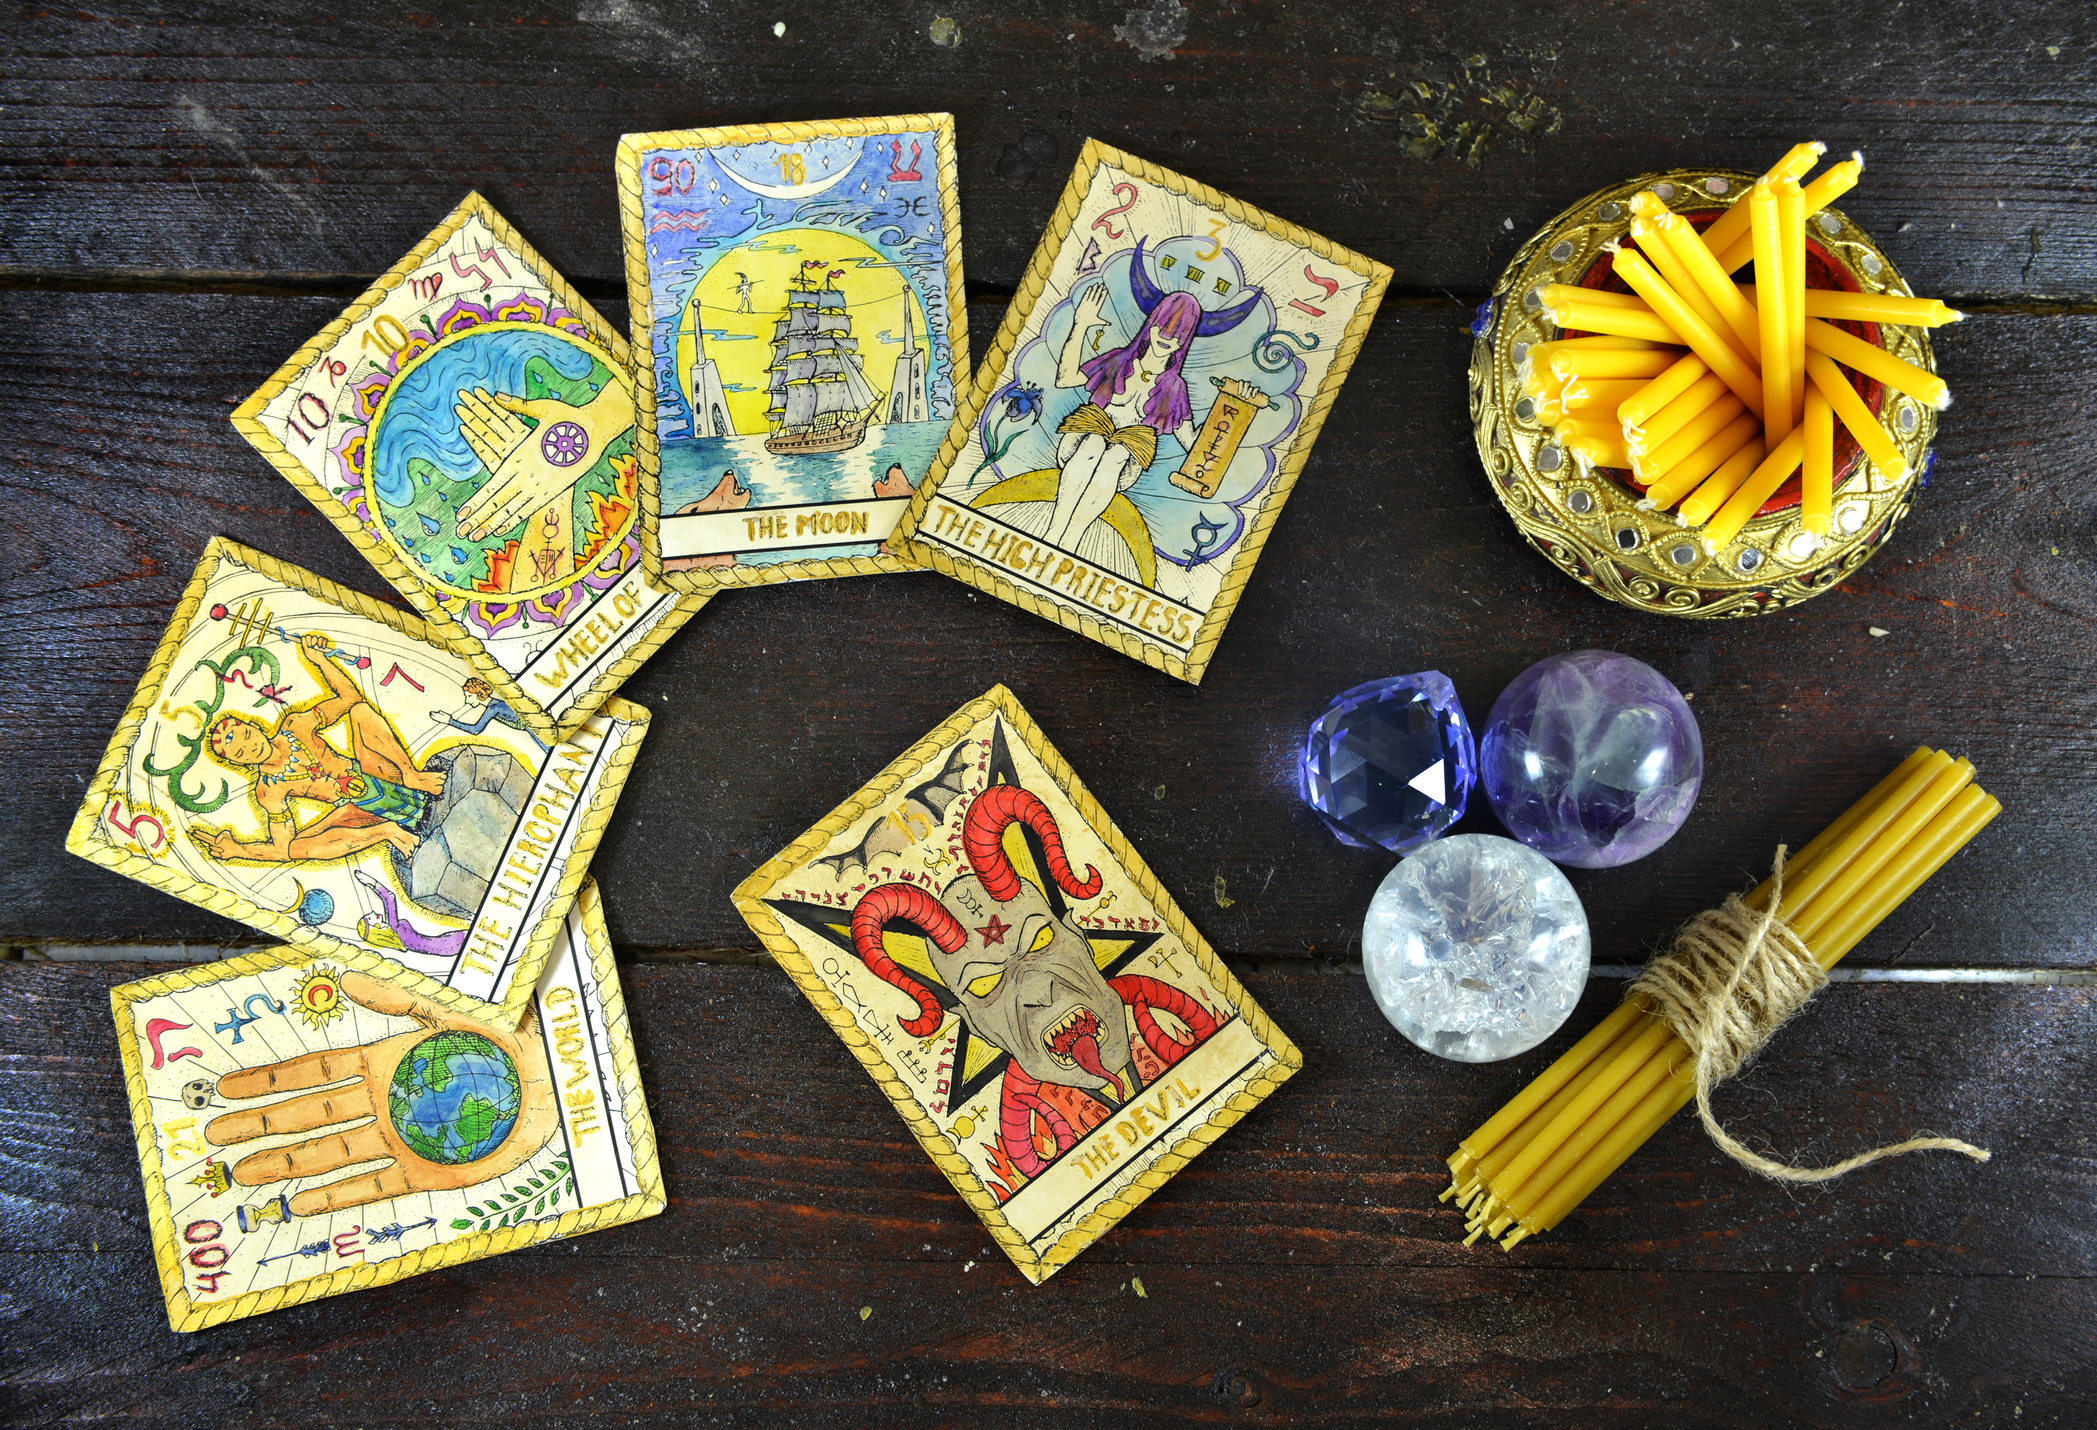 pagan ritual items and tarot cards